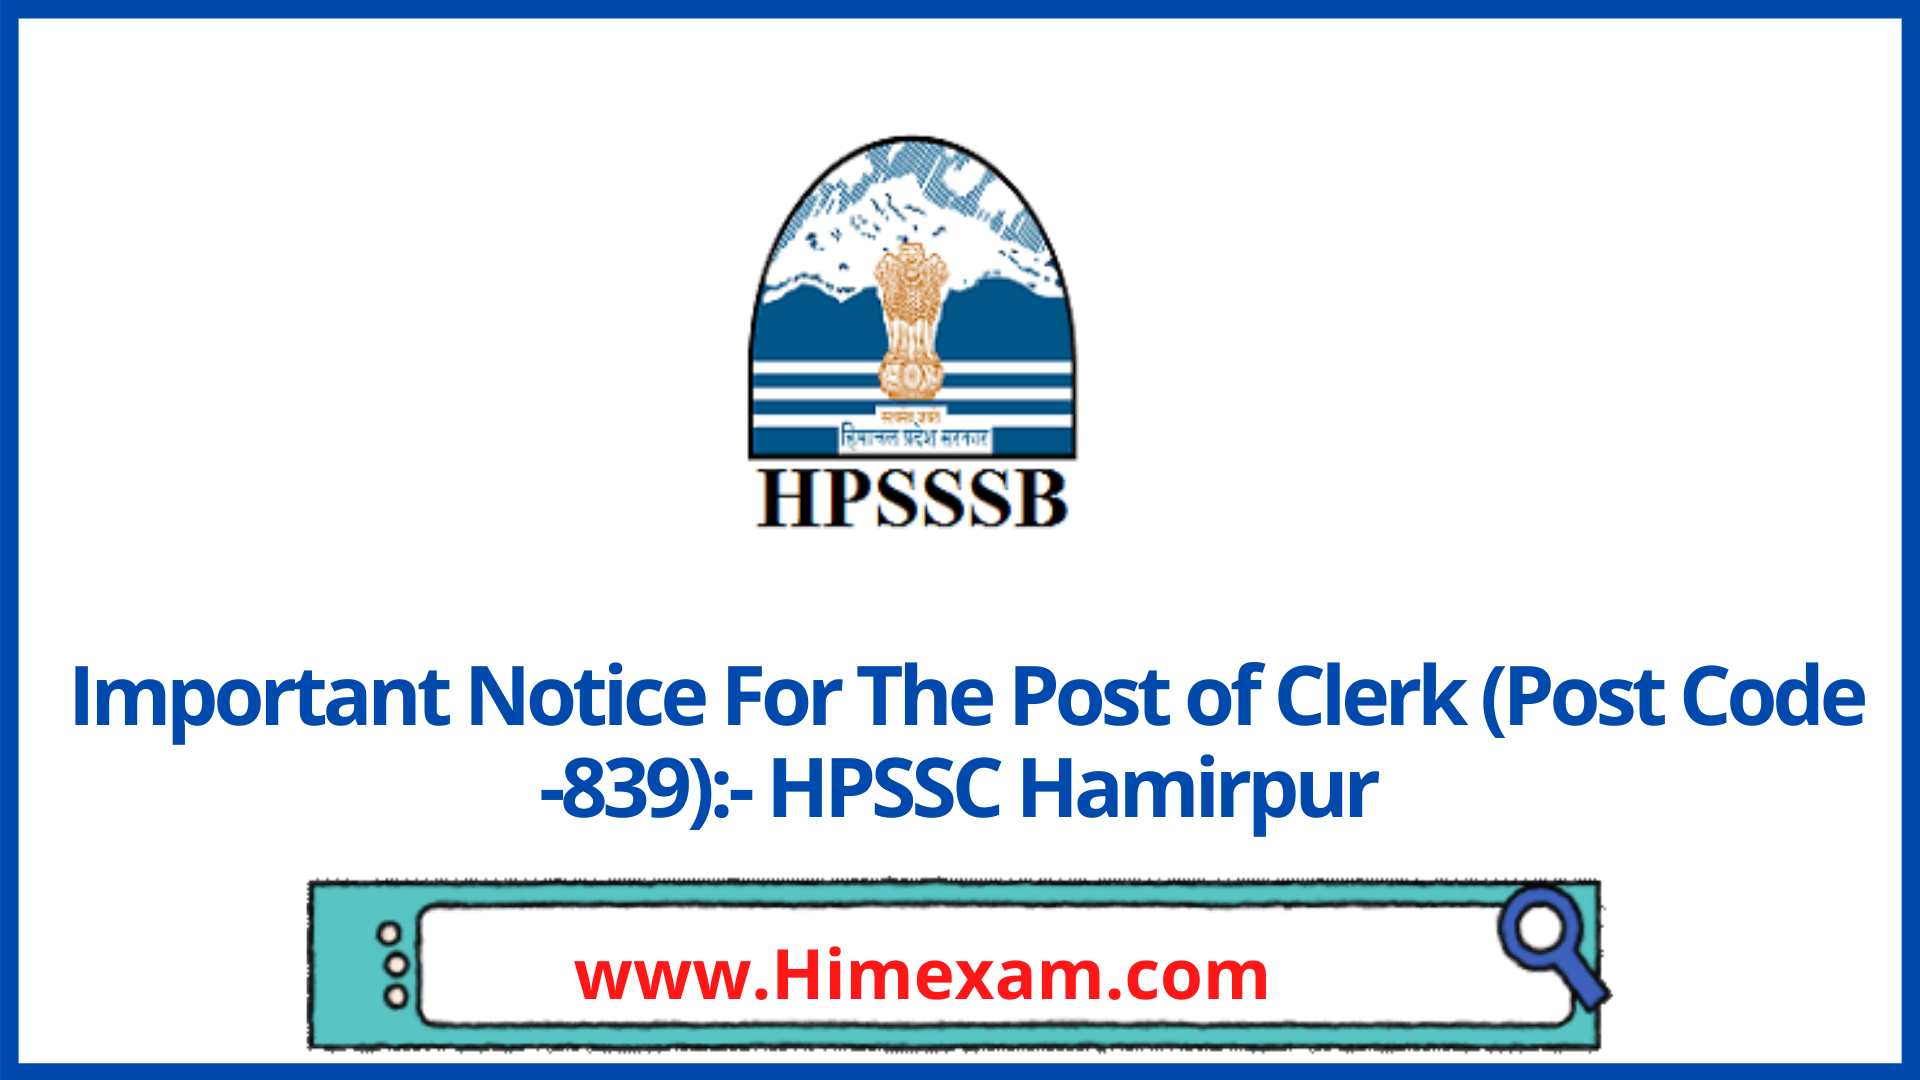 Important Notice For The Post of Clerk (Post Code -839):- HPSSC Hamirpur